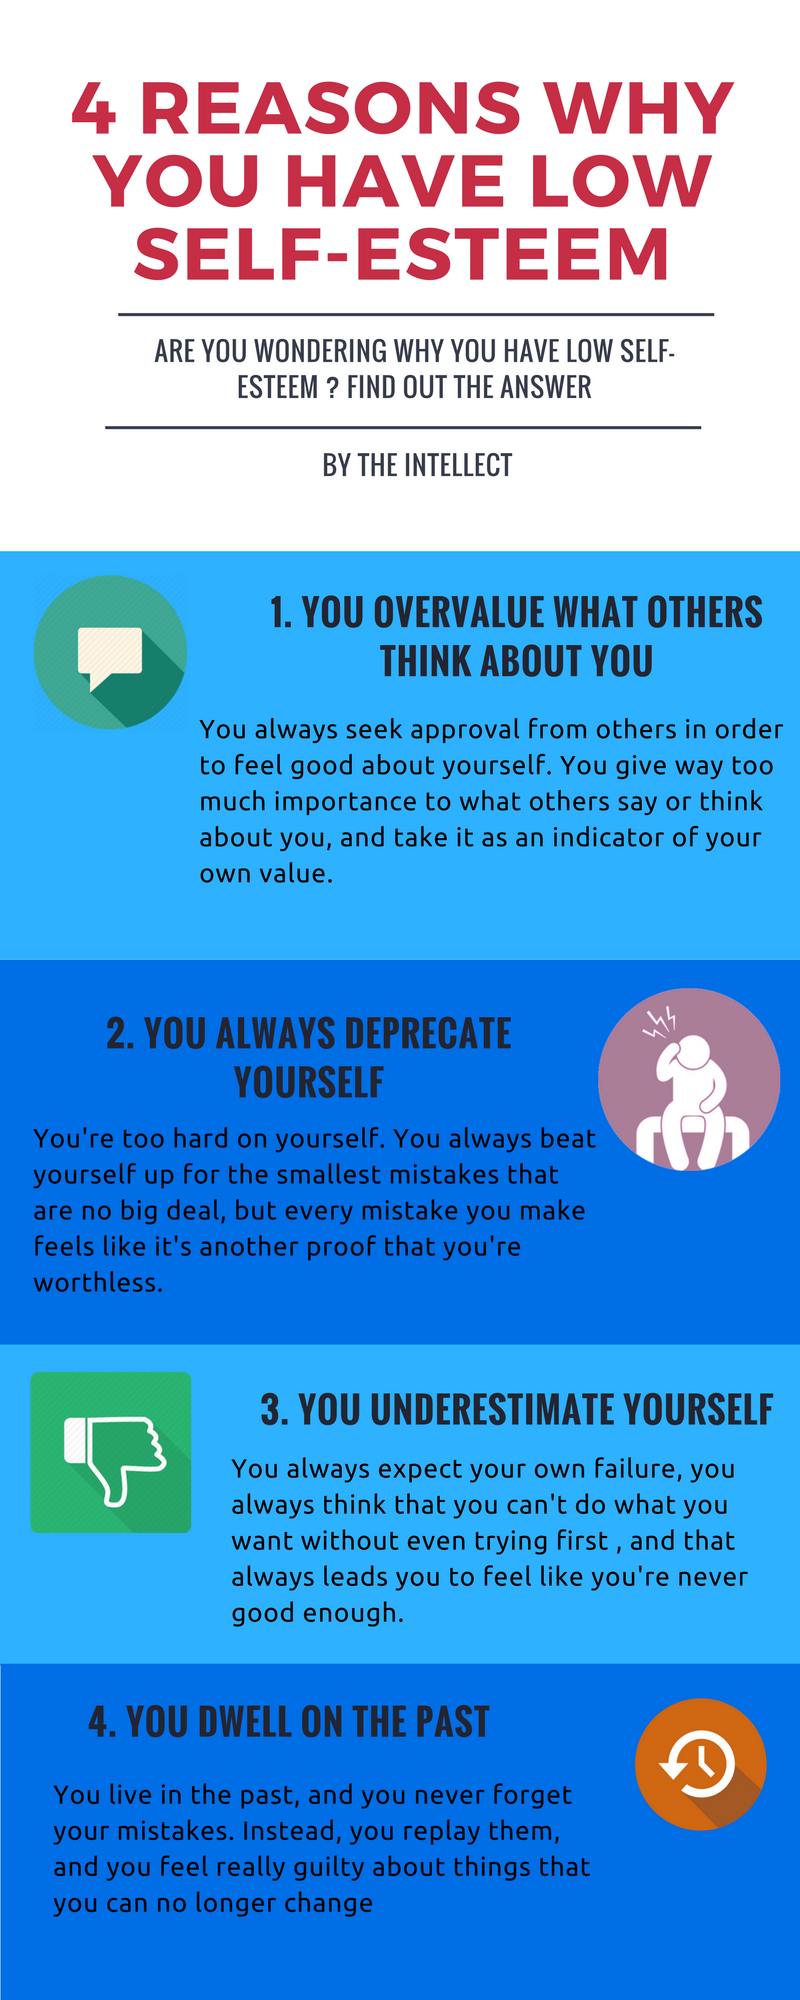 development and importance of self esteem 6 low self esteem while low self esteem my not have a major part to play in the early stages of drug use, especially in relation to legal drugs, it is an important factor in the progression to abuse of drugs.